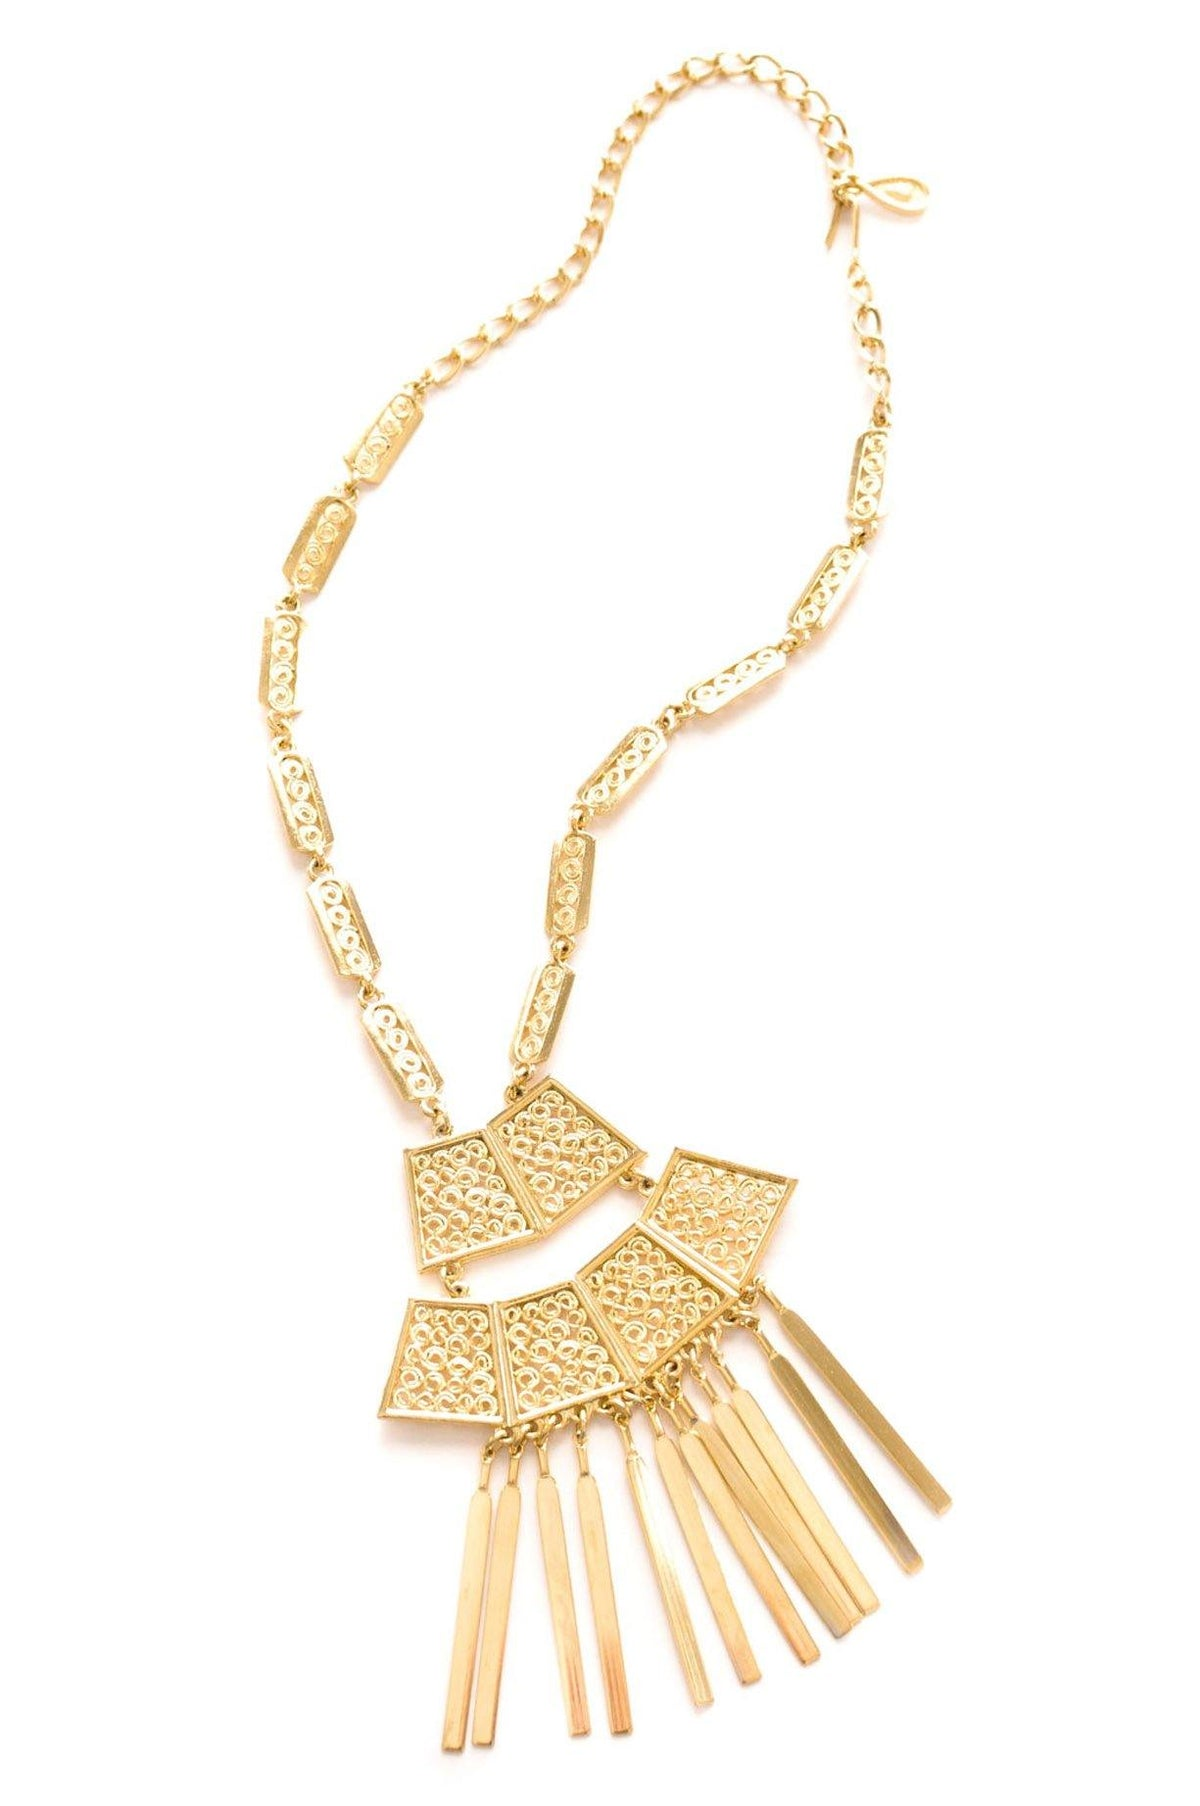 Vintage Gold Statement Tassel Necklace from Sweet & Spark